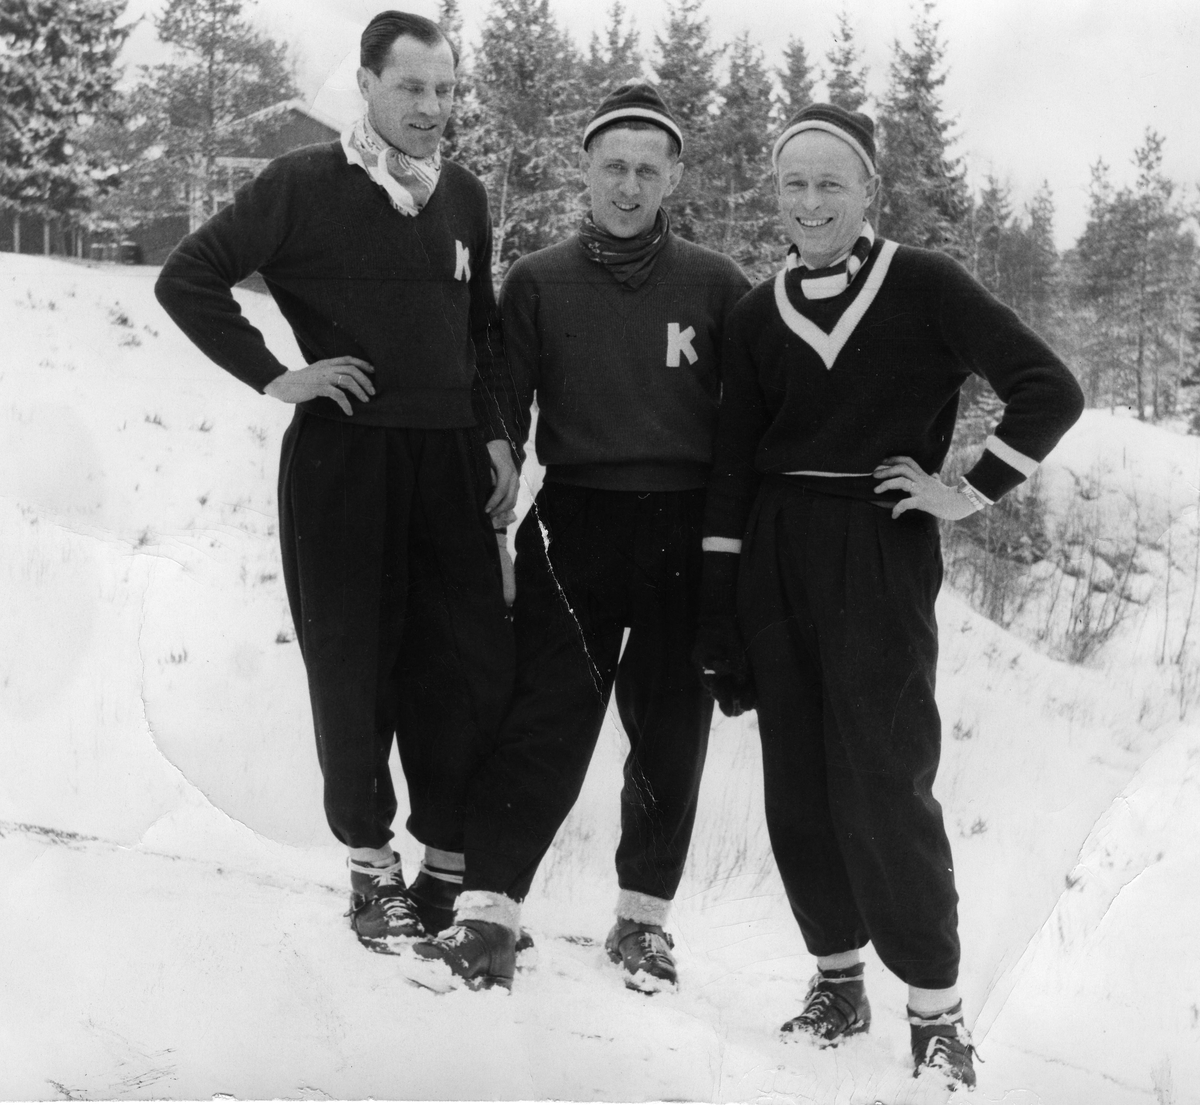 KIF-hoppere Arne Ulland, Petter Hugsted og Hans Jacob Haanes. The ski jumpers Arne Ulland, Petter Hugsted and Hans Jacob Haanes.